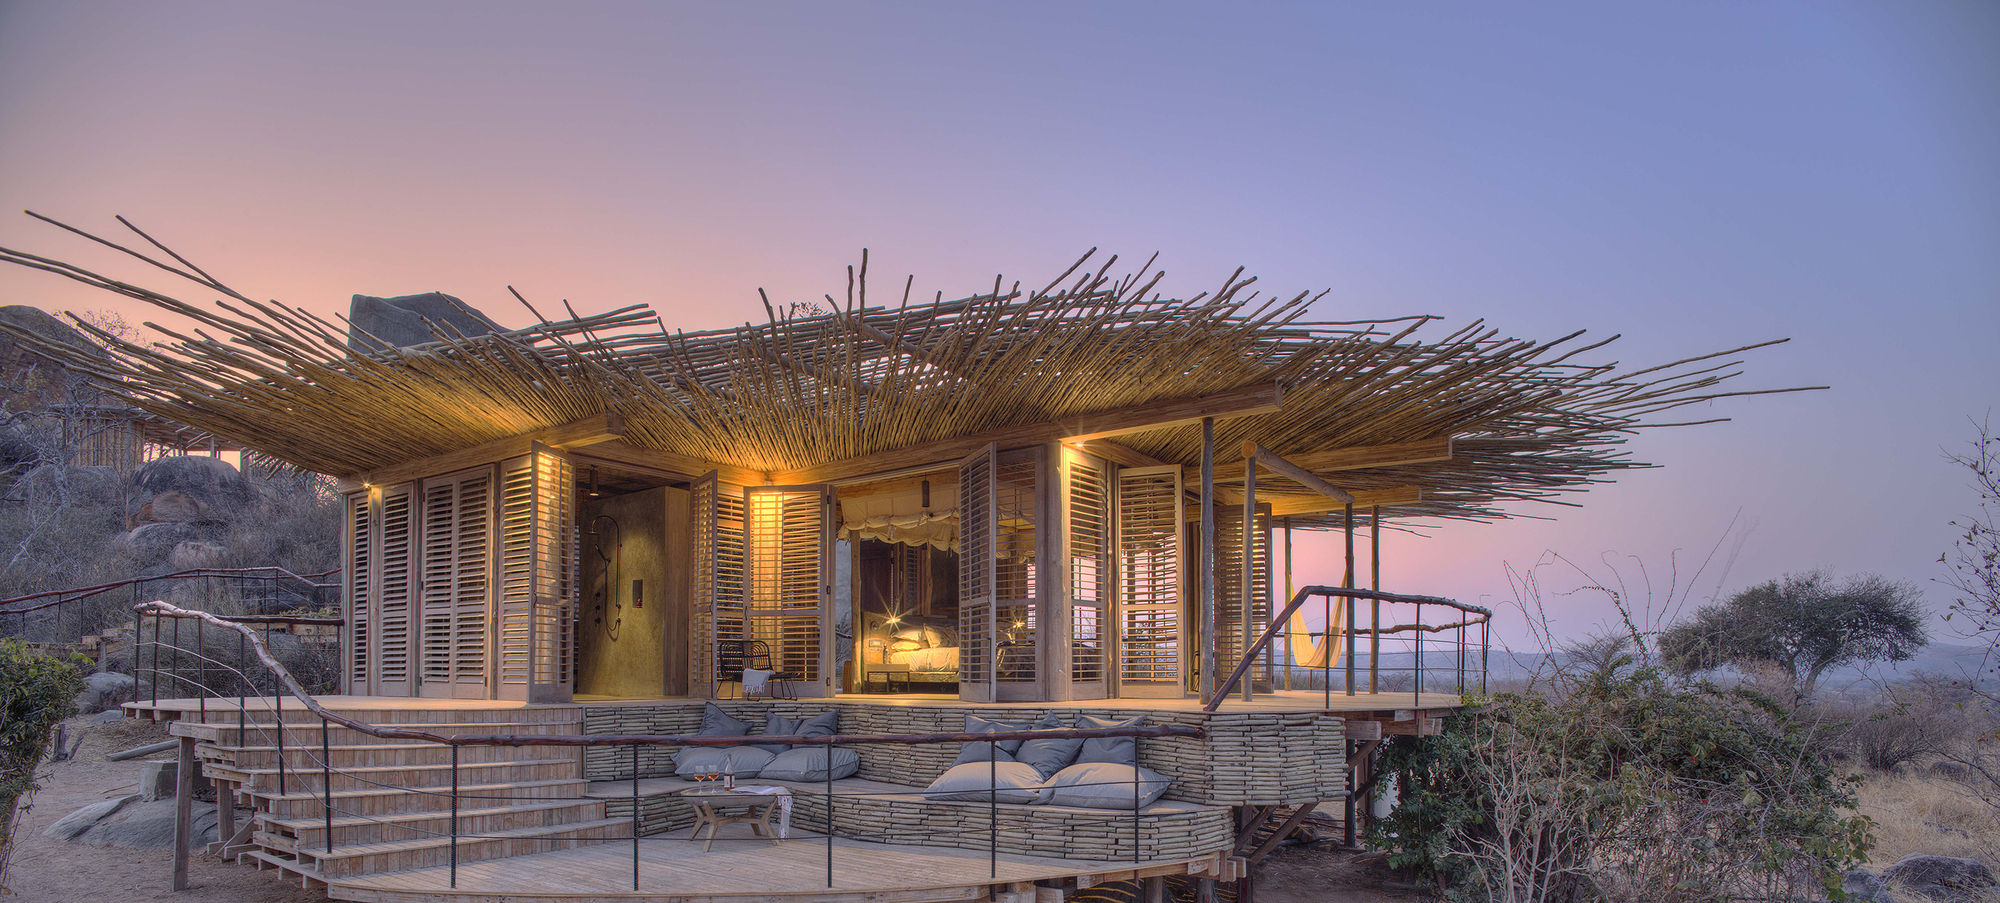 Beautiful natural lodge in Ruaha National Park, Tanzania allows you to explore untouched Africa